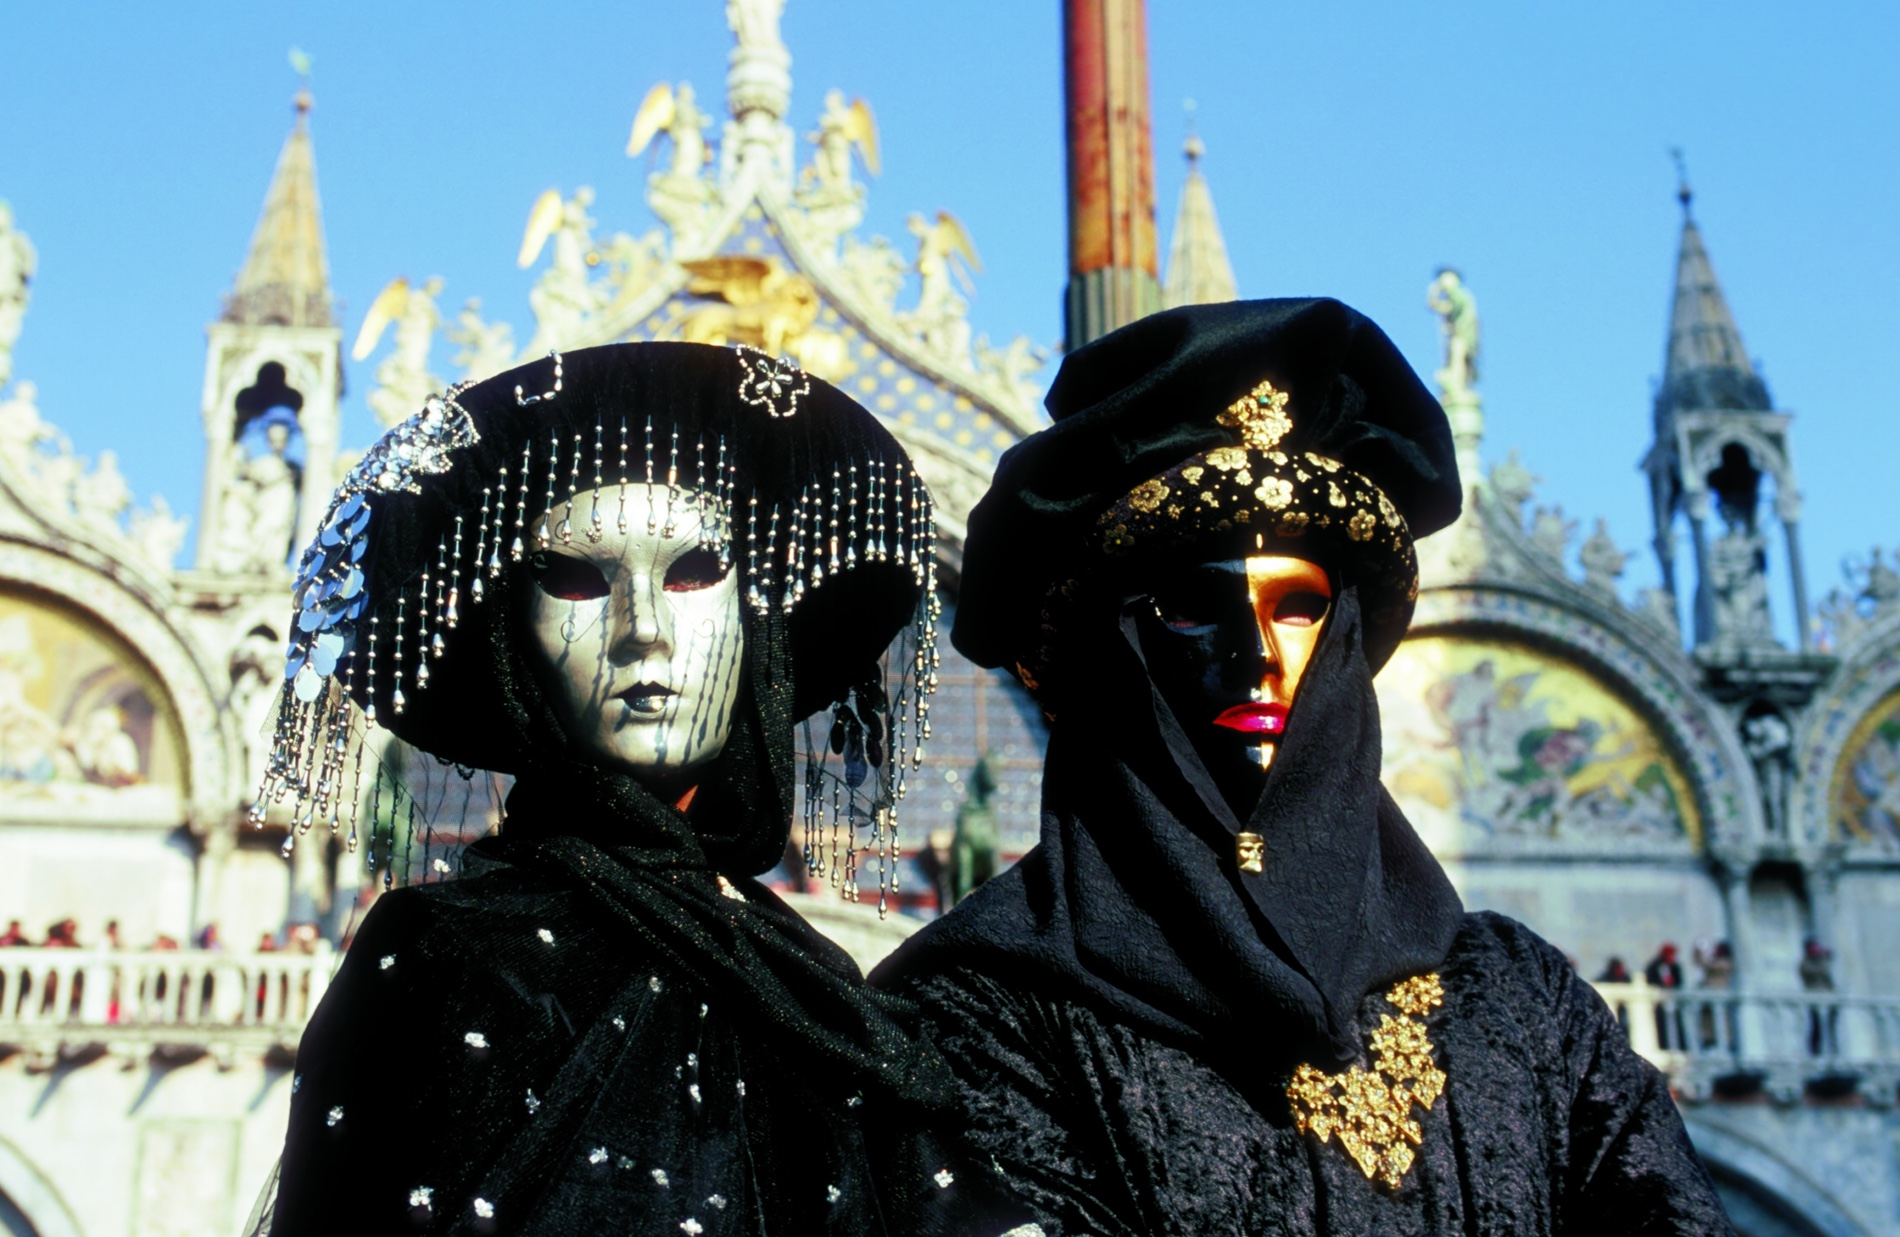 Carnevale traditional masks in Venice, Italy reflect Mardi Gras history